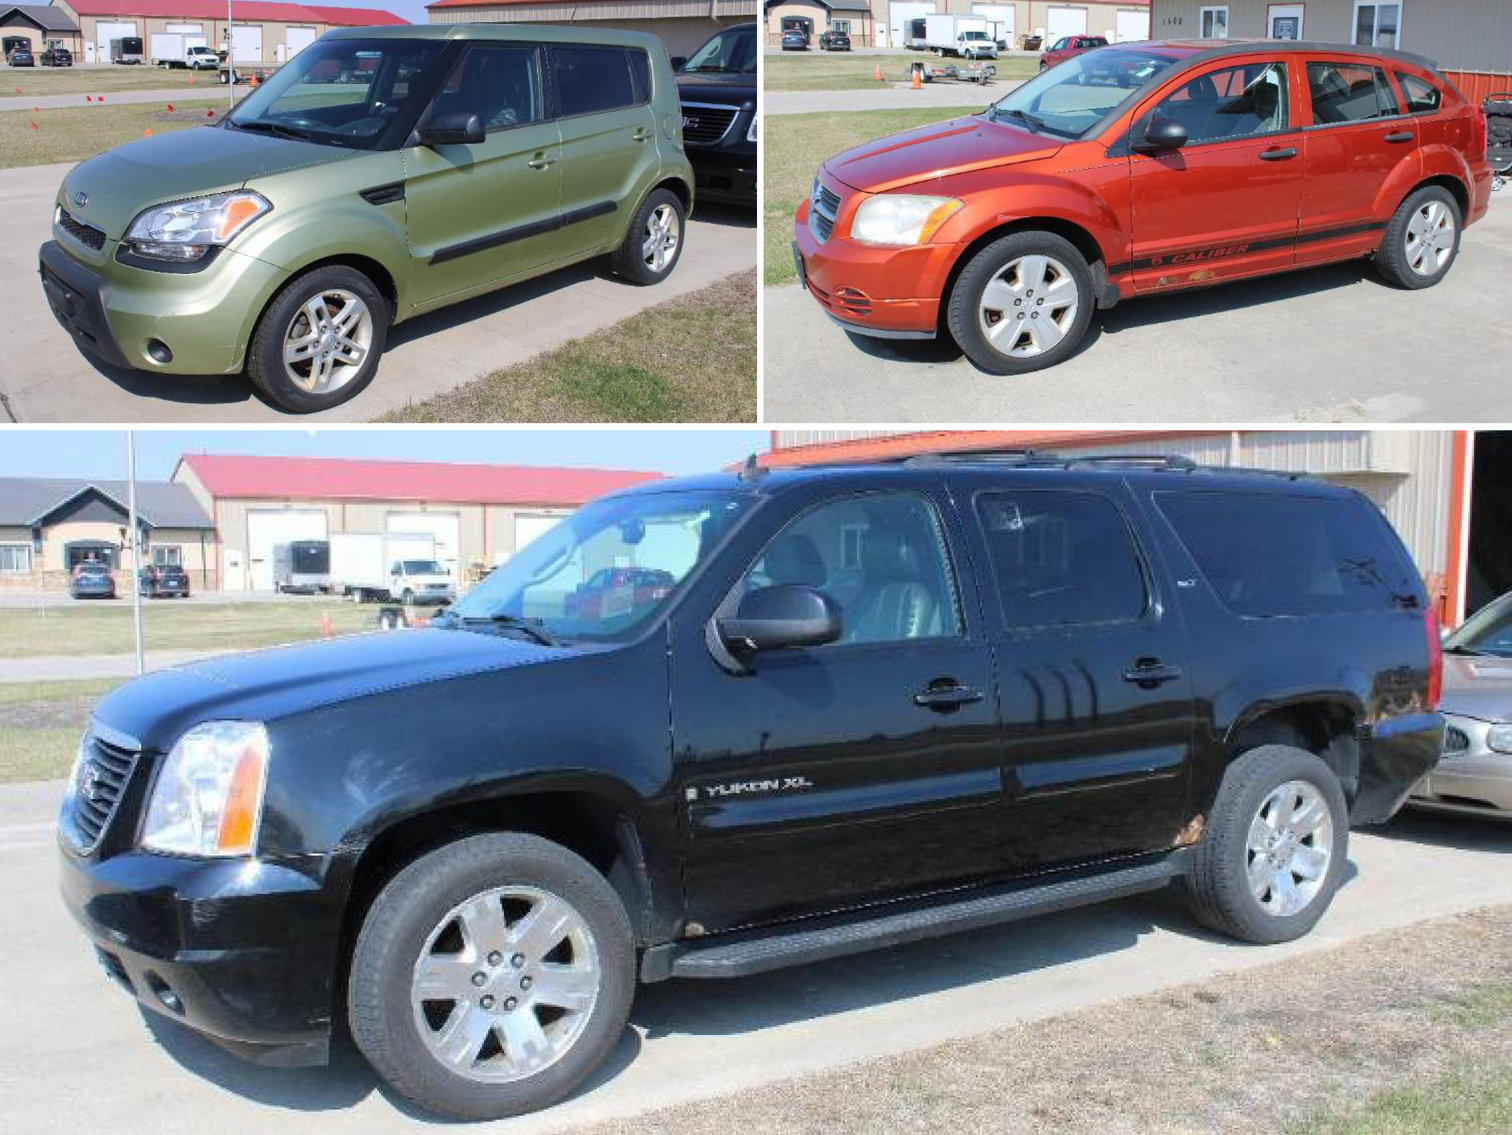 West Fargo Vehicle & Consignment